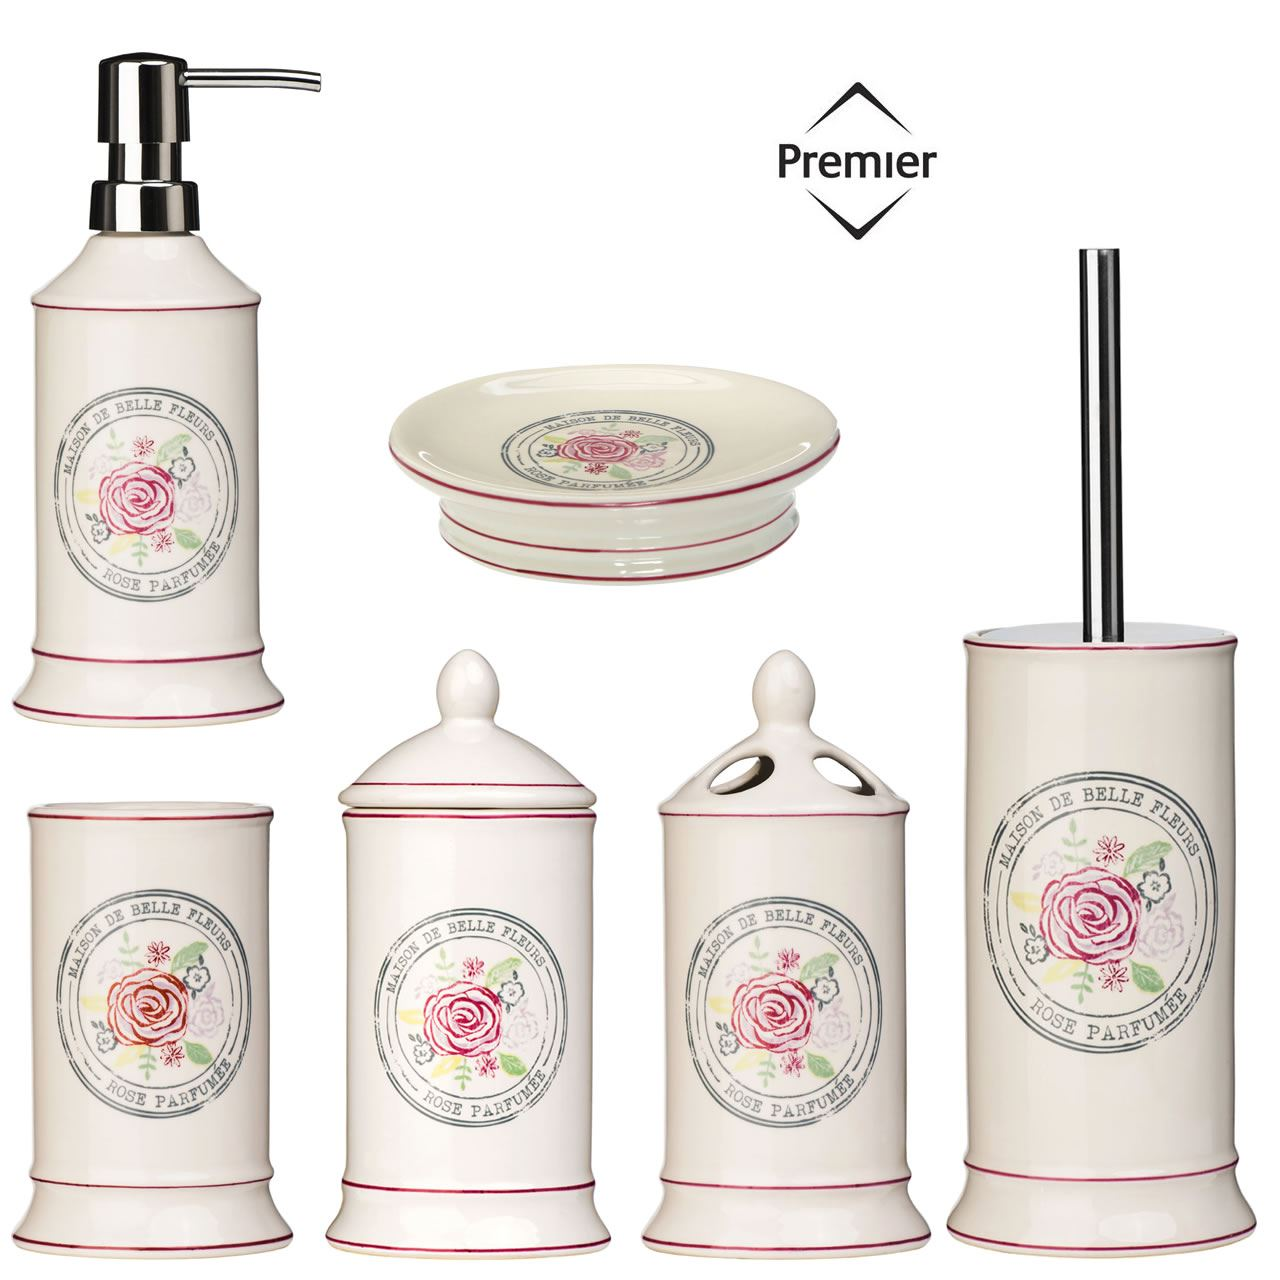 Bathroom accessories bath dispenser storage set ceramic belle cream shabby chic ebay - Accessori bagno shabby ...